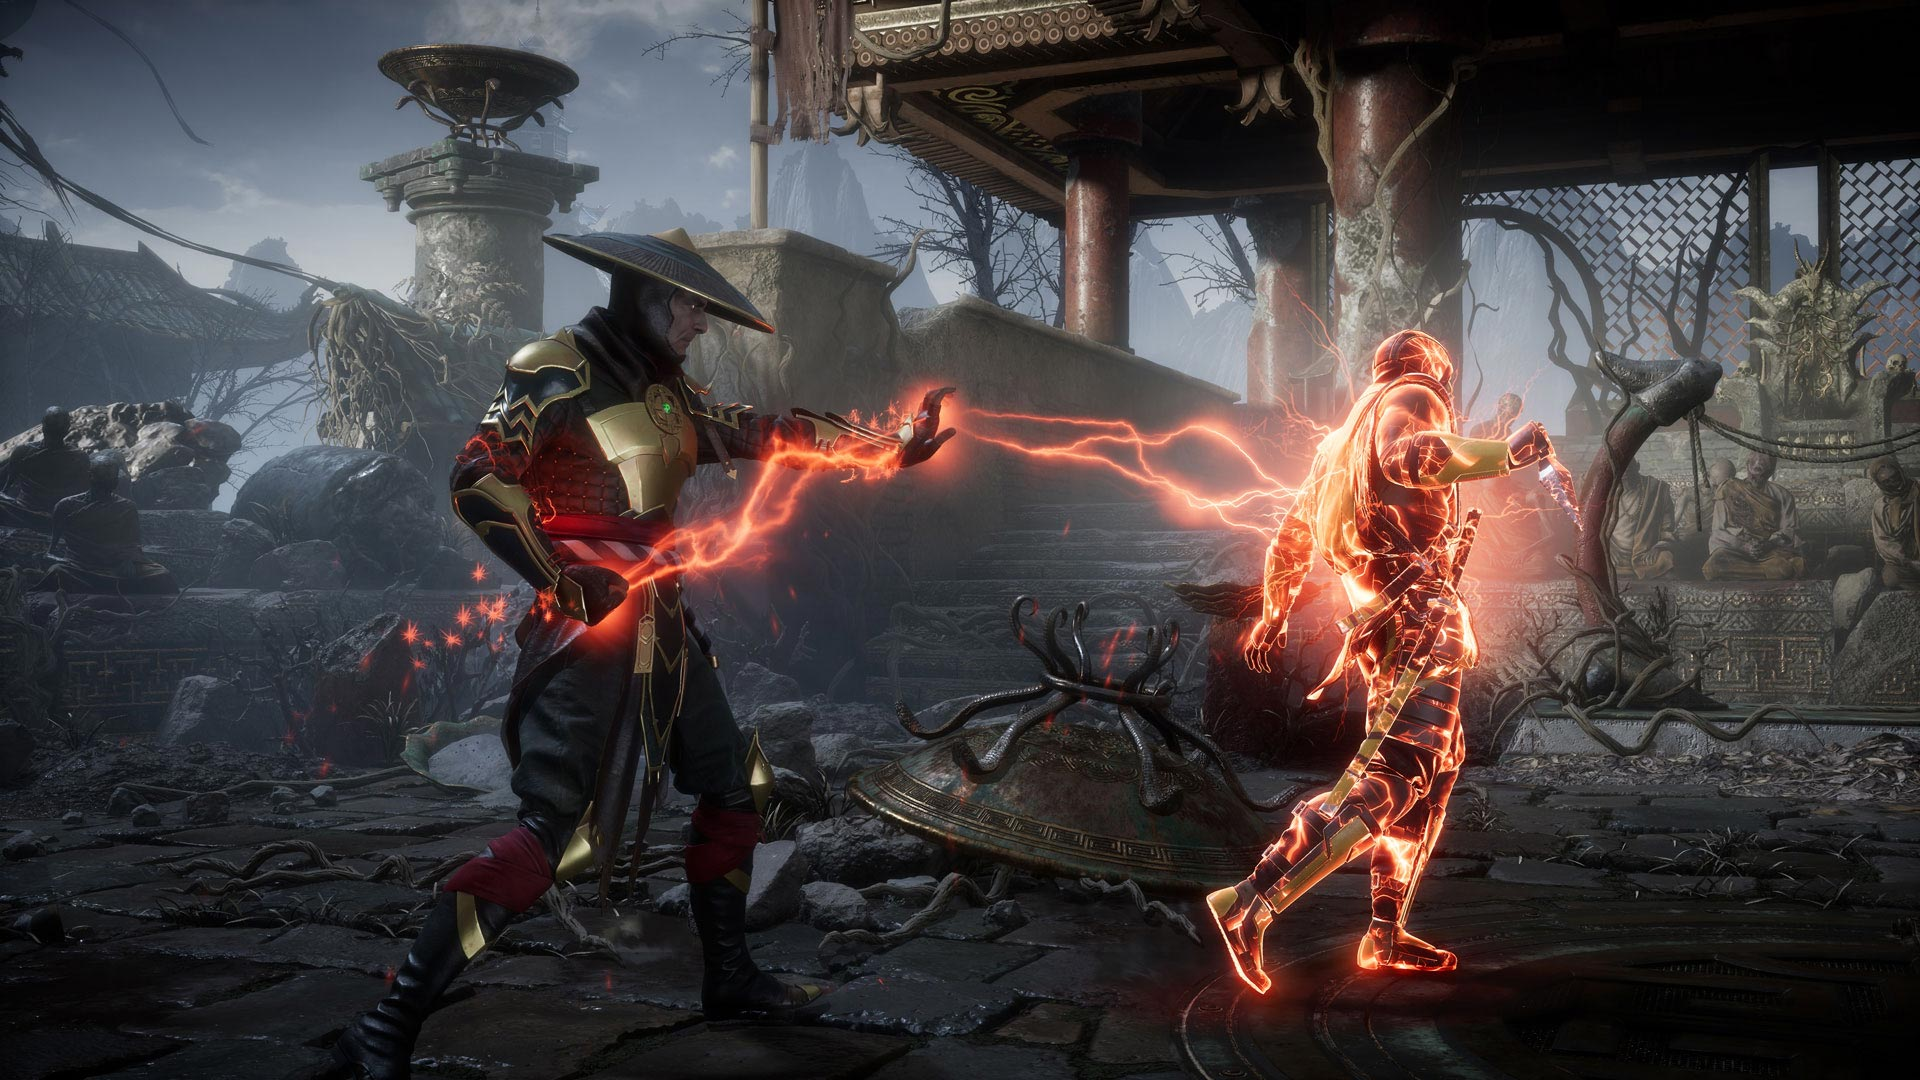 Mortal Kombat 11 Will Let You Customize Characters Has Esports